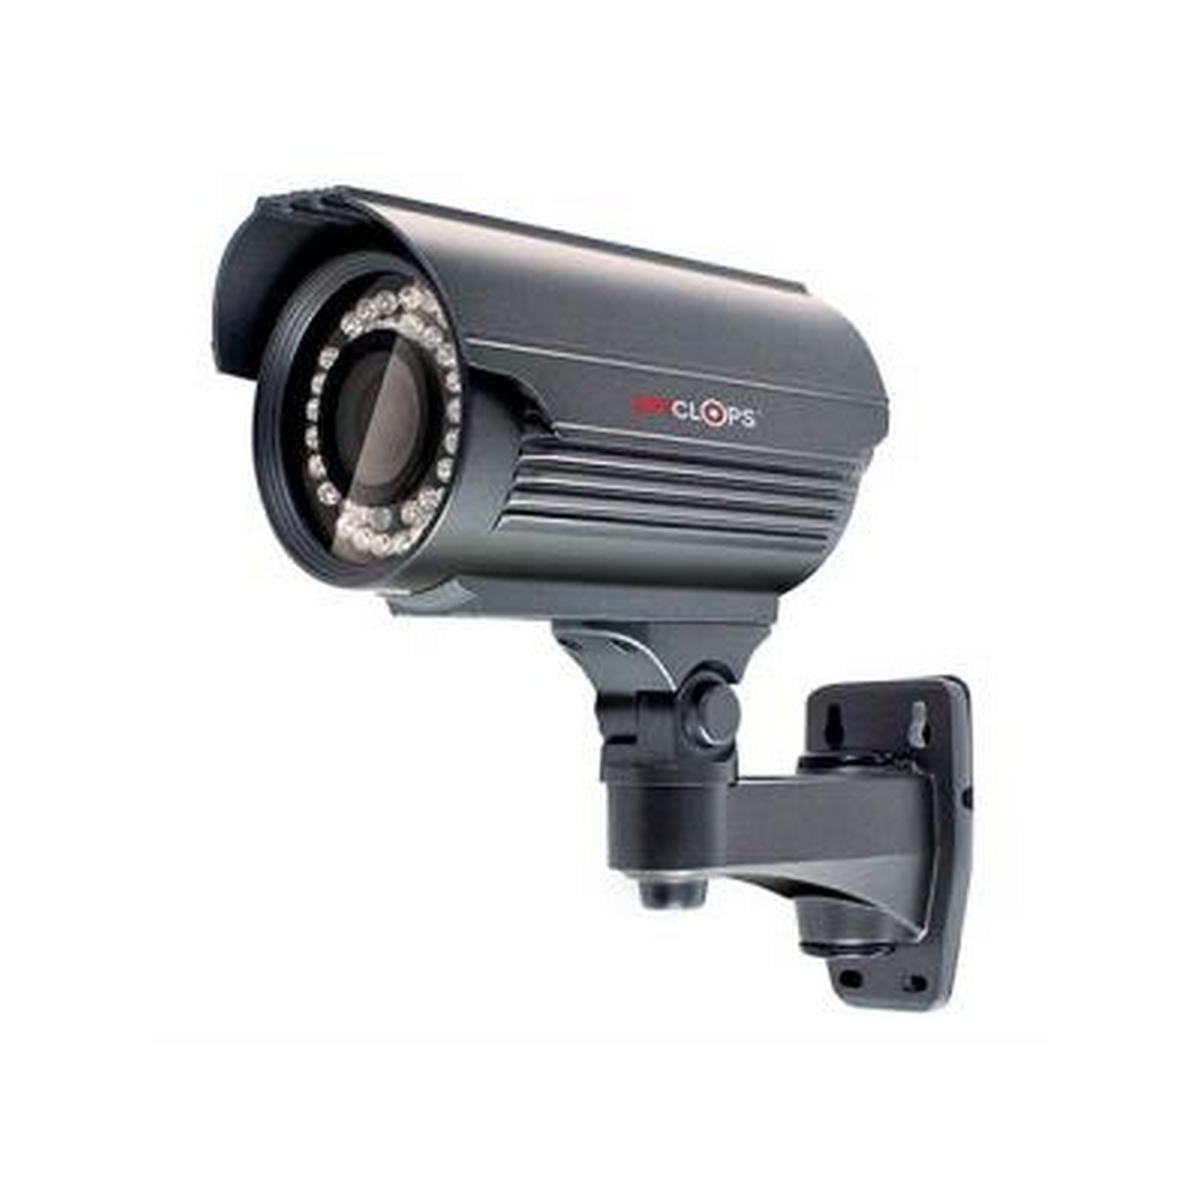 SPYCLOPS BULLET CAMERA DARK GREY 700 TVL IP66 .001 LUX 42 IRLED